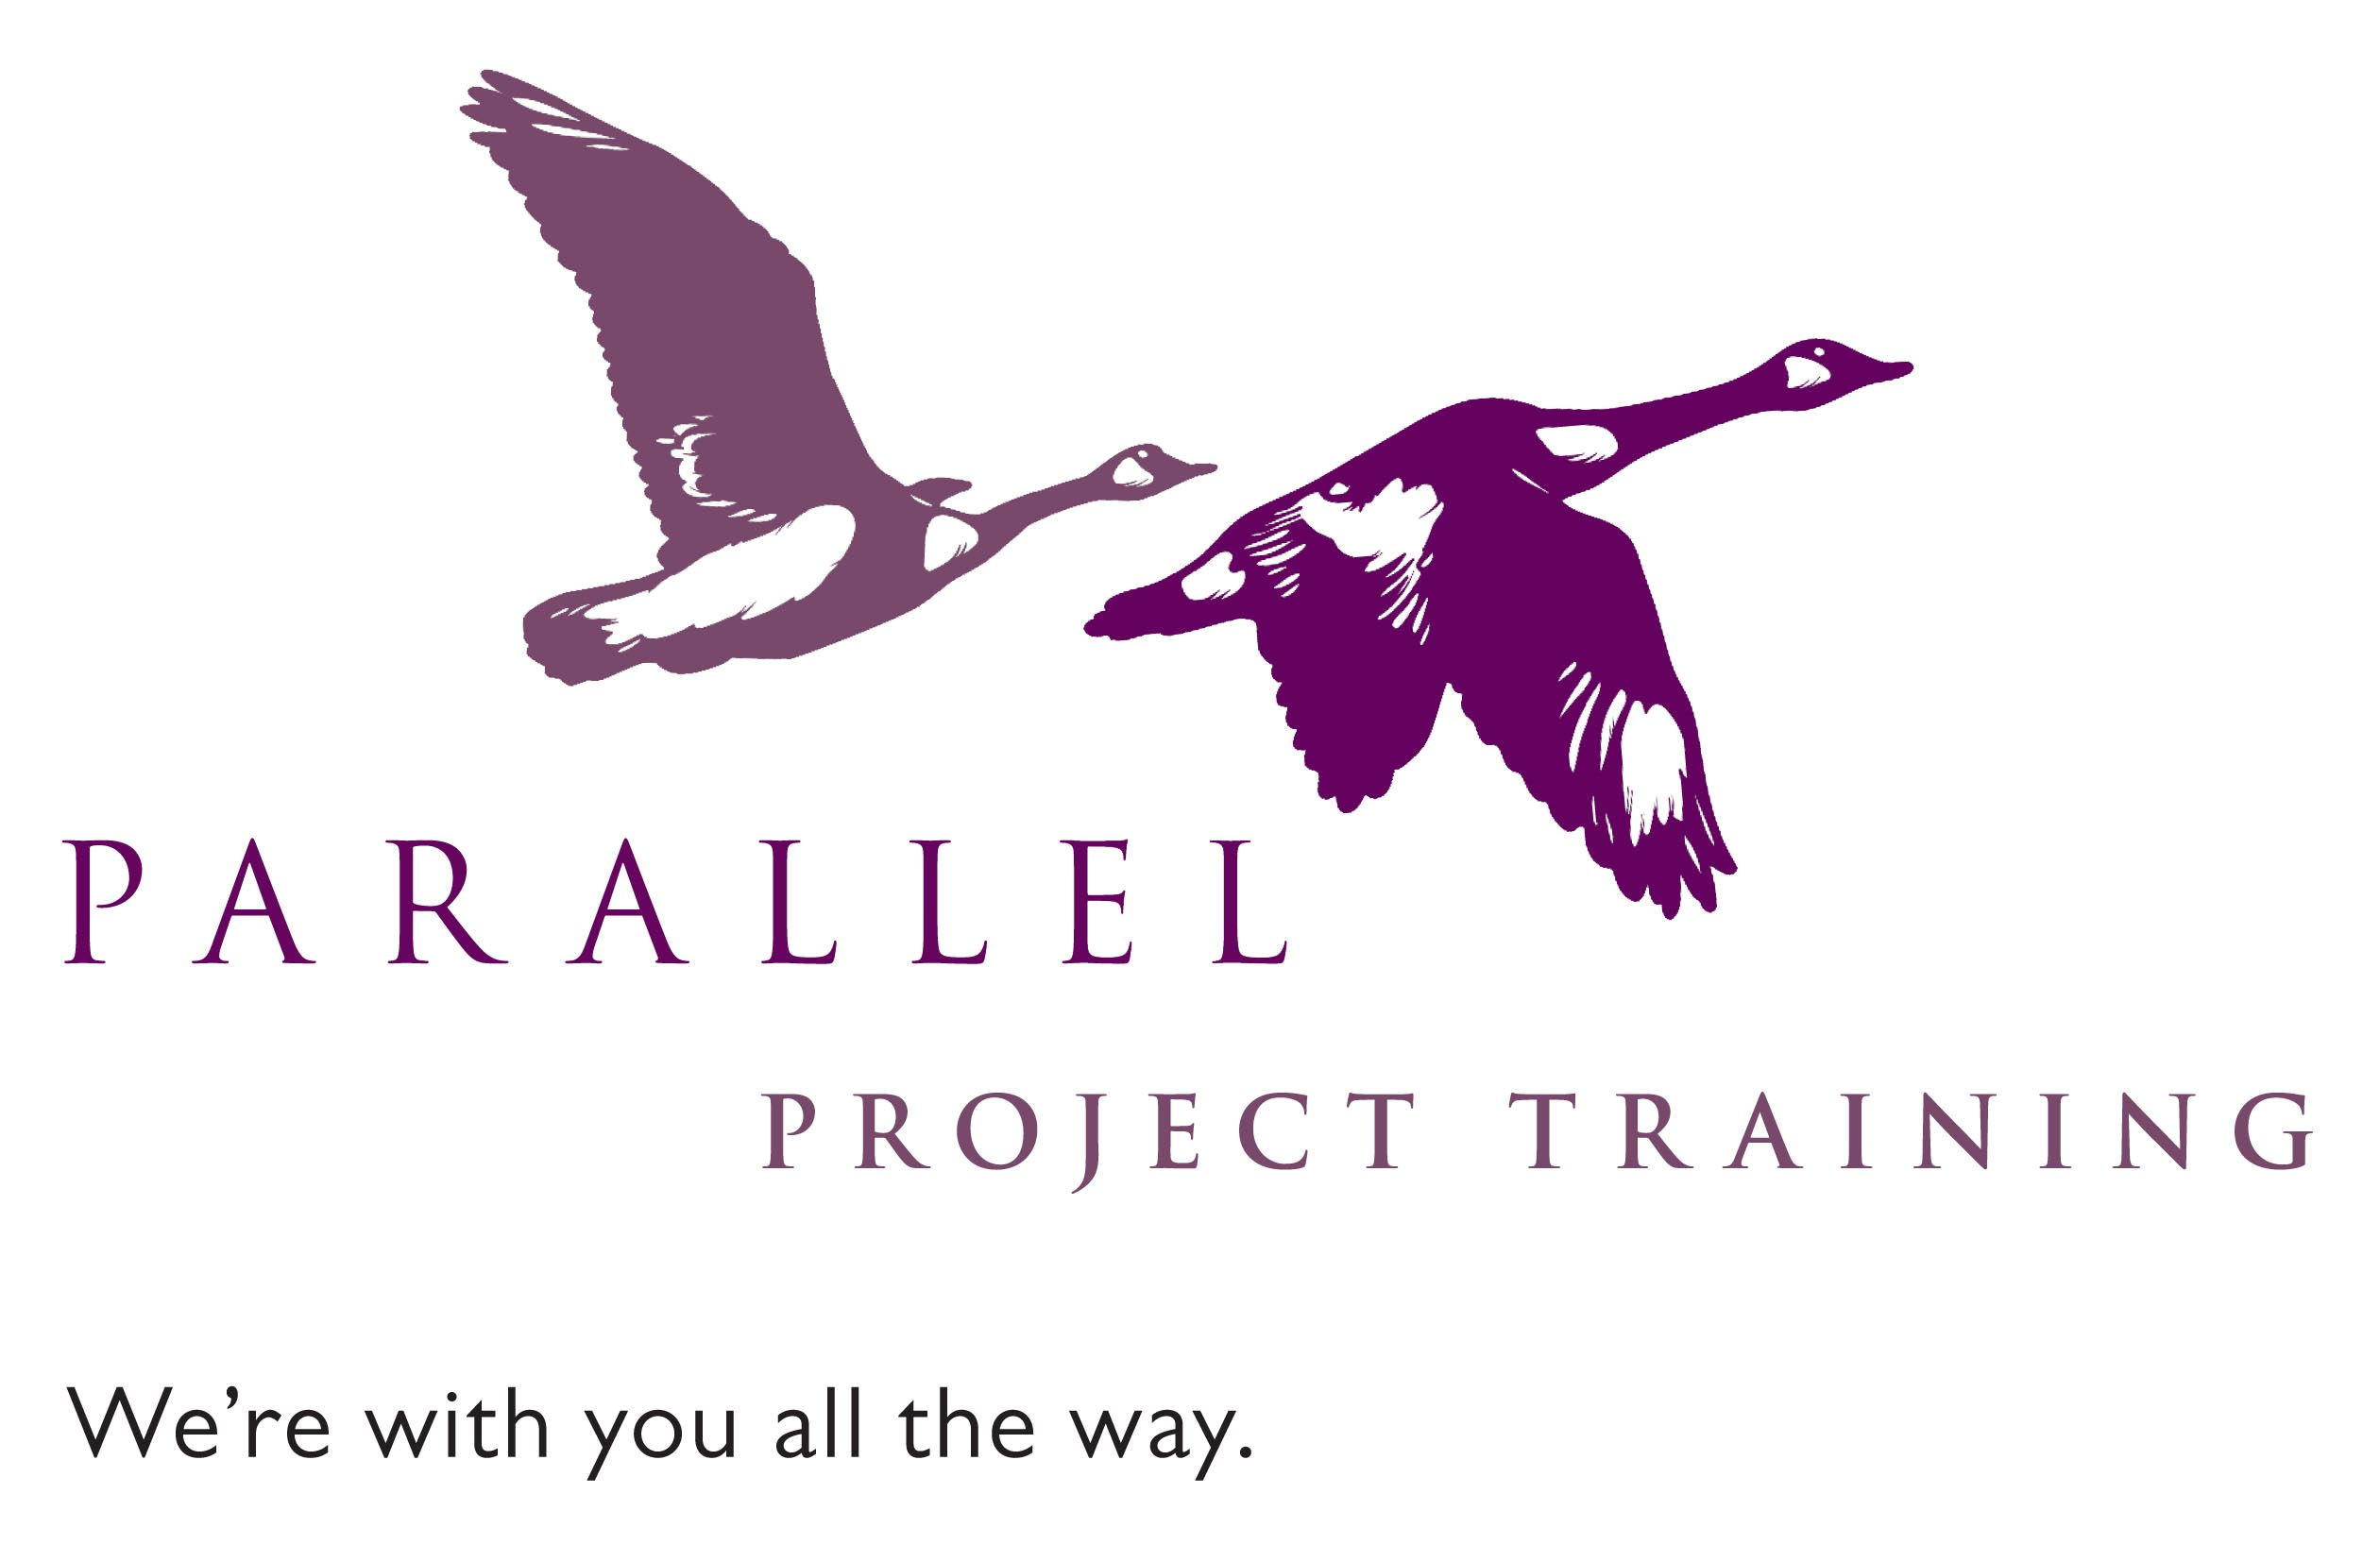 Parallel Project Training Develops Prestigious Client Base